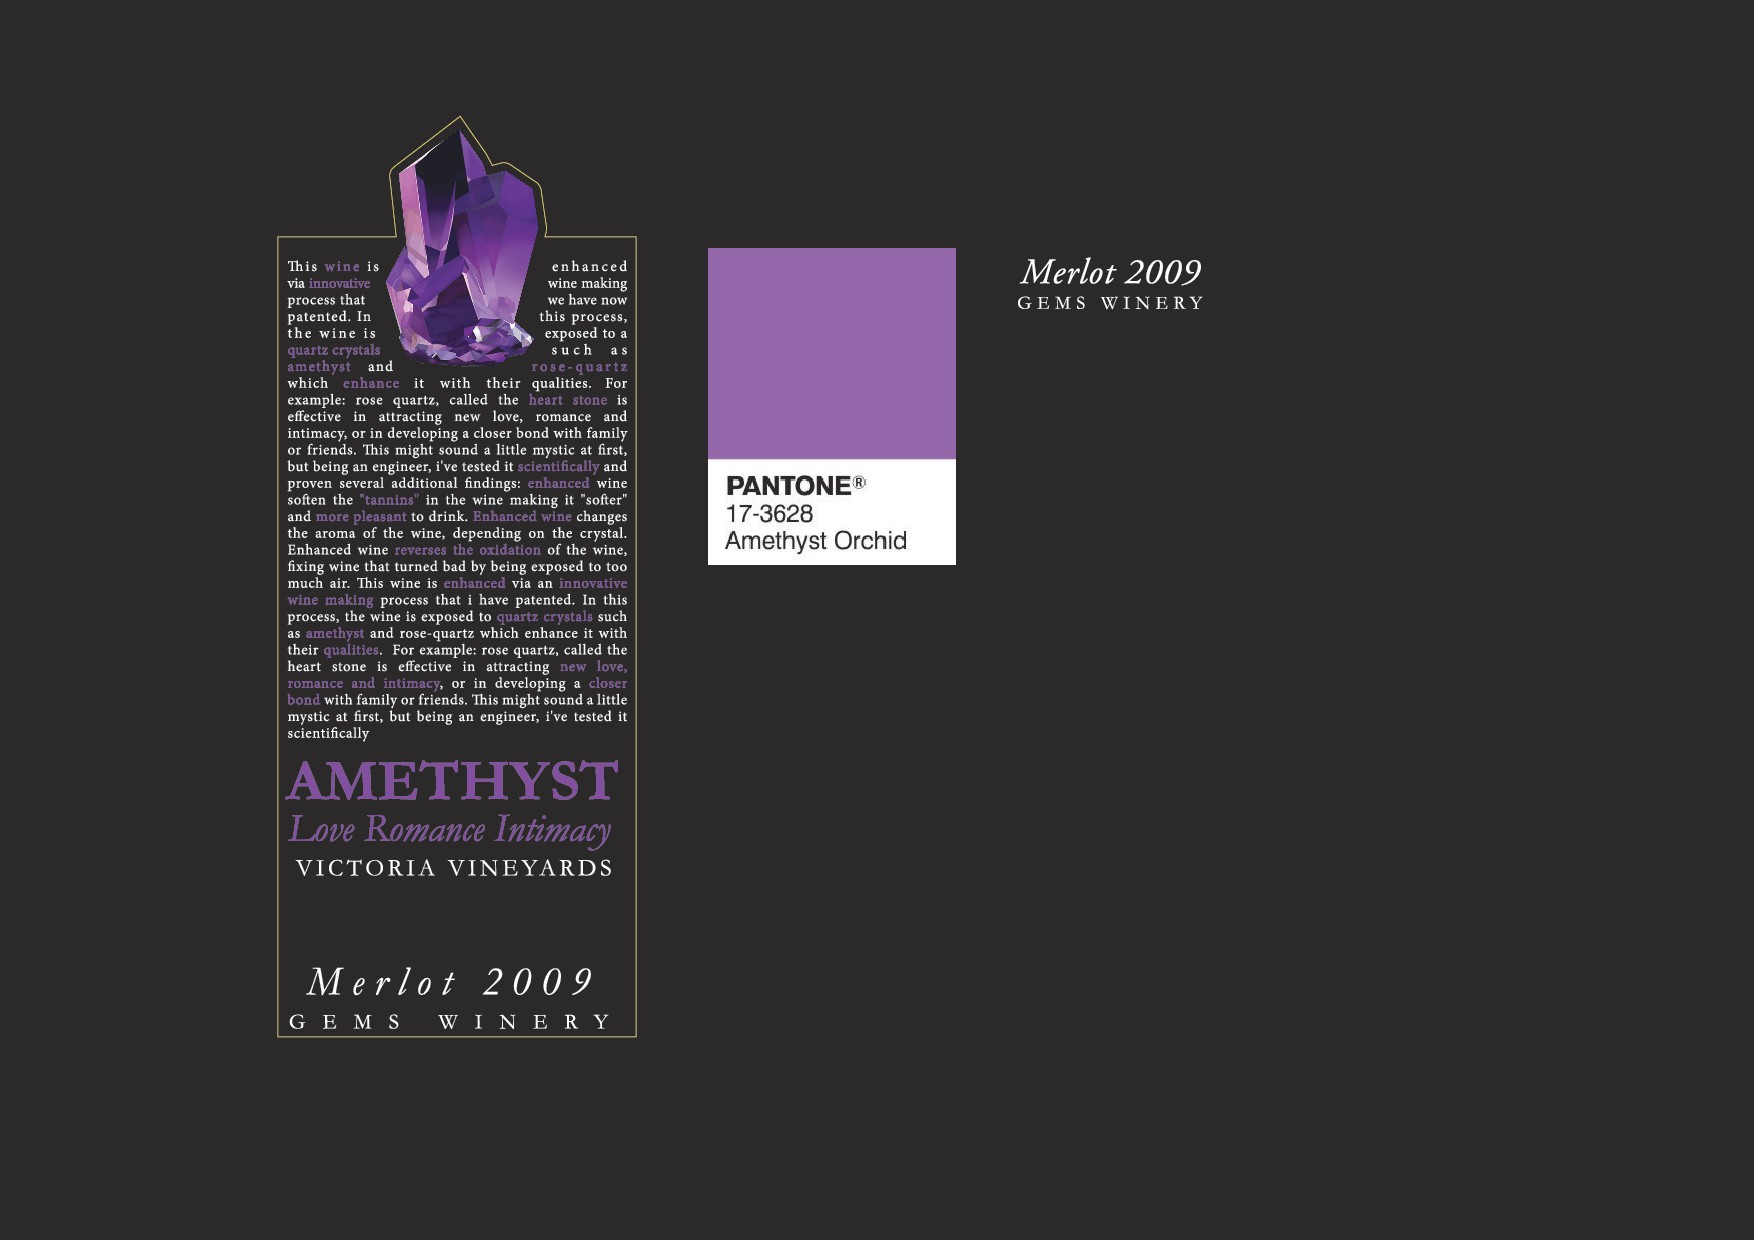 Create a Wine label for a cool new wine innovation